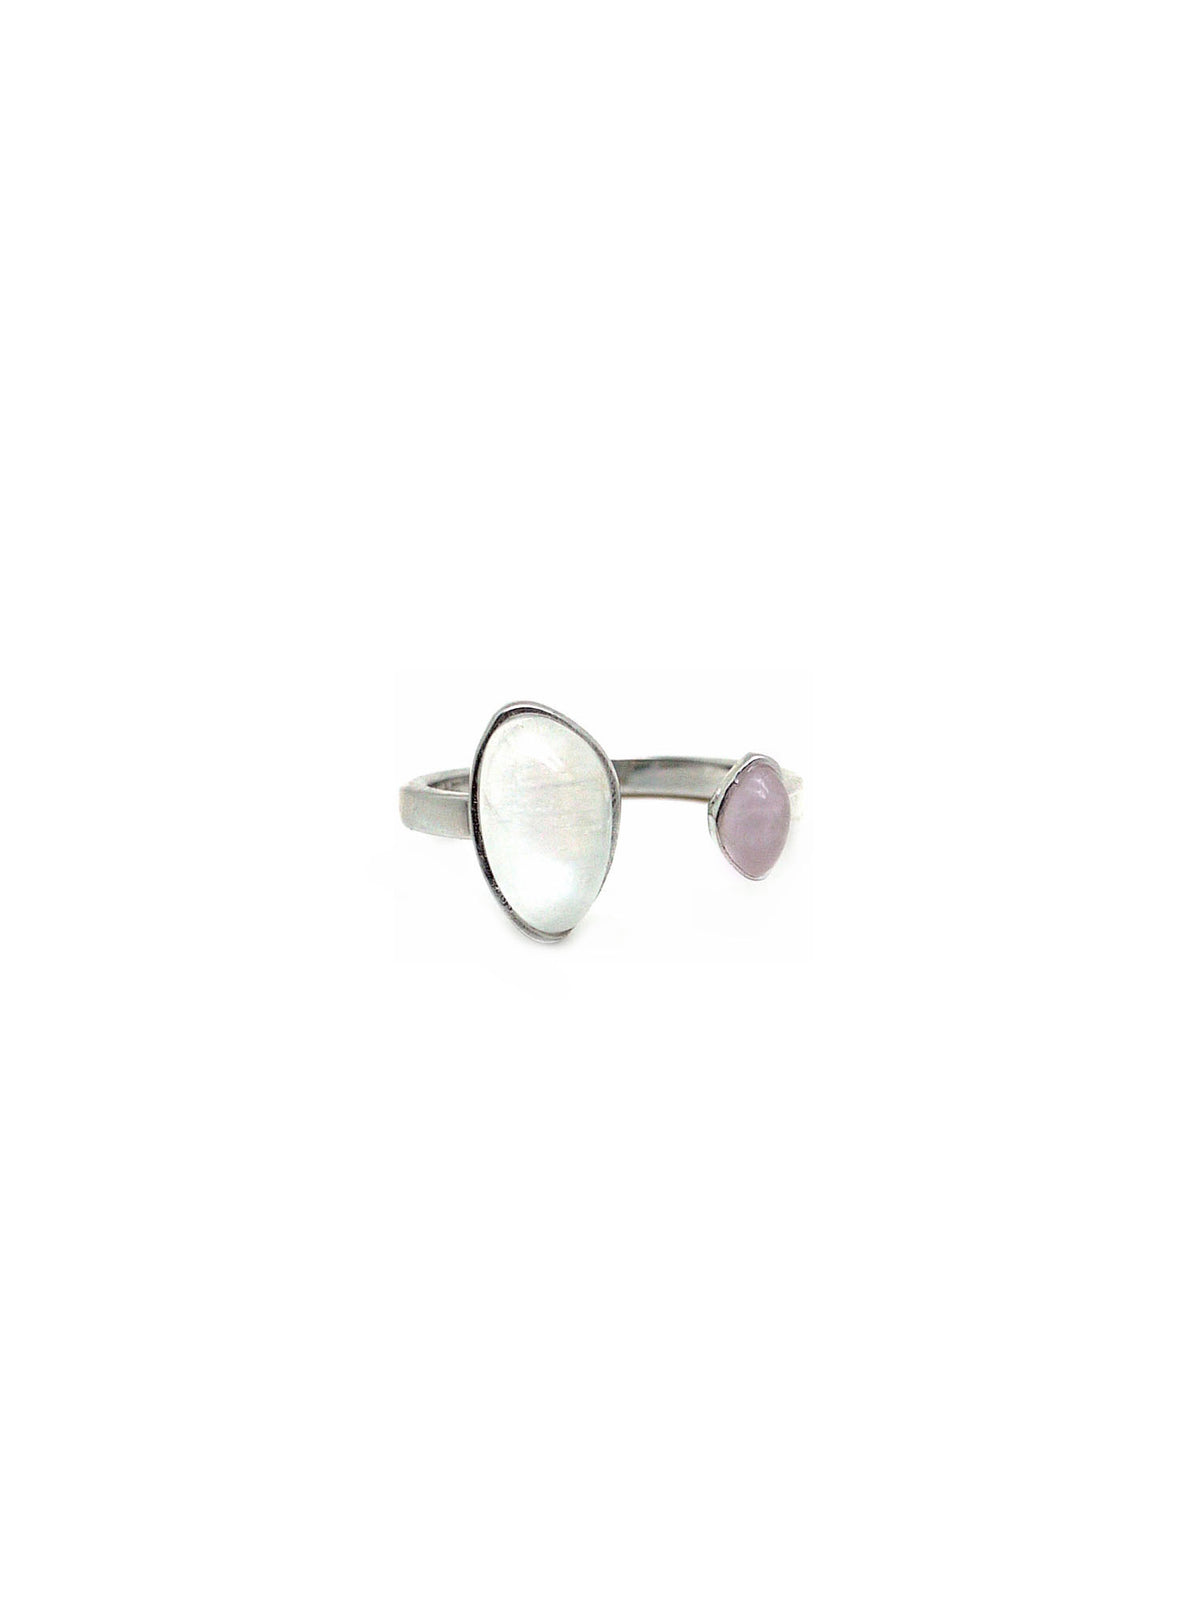 Gaea Duo - Rhodium - Moonstone / Rose Quartz